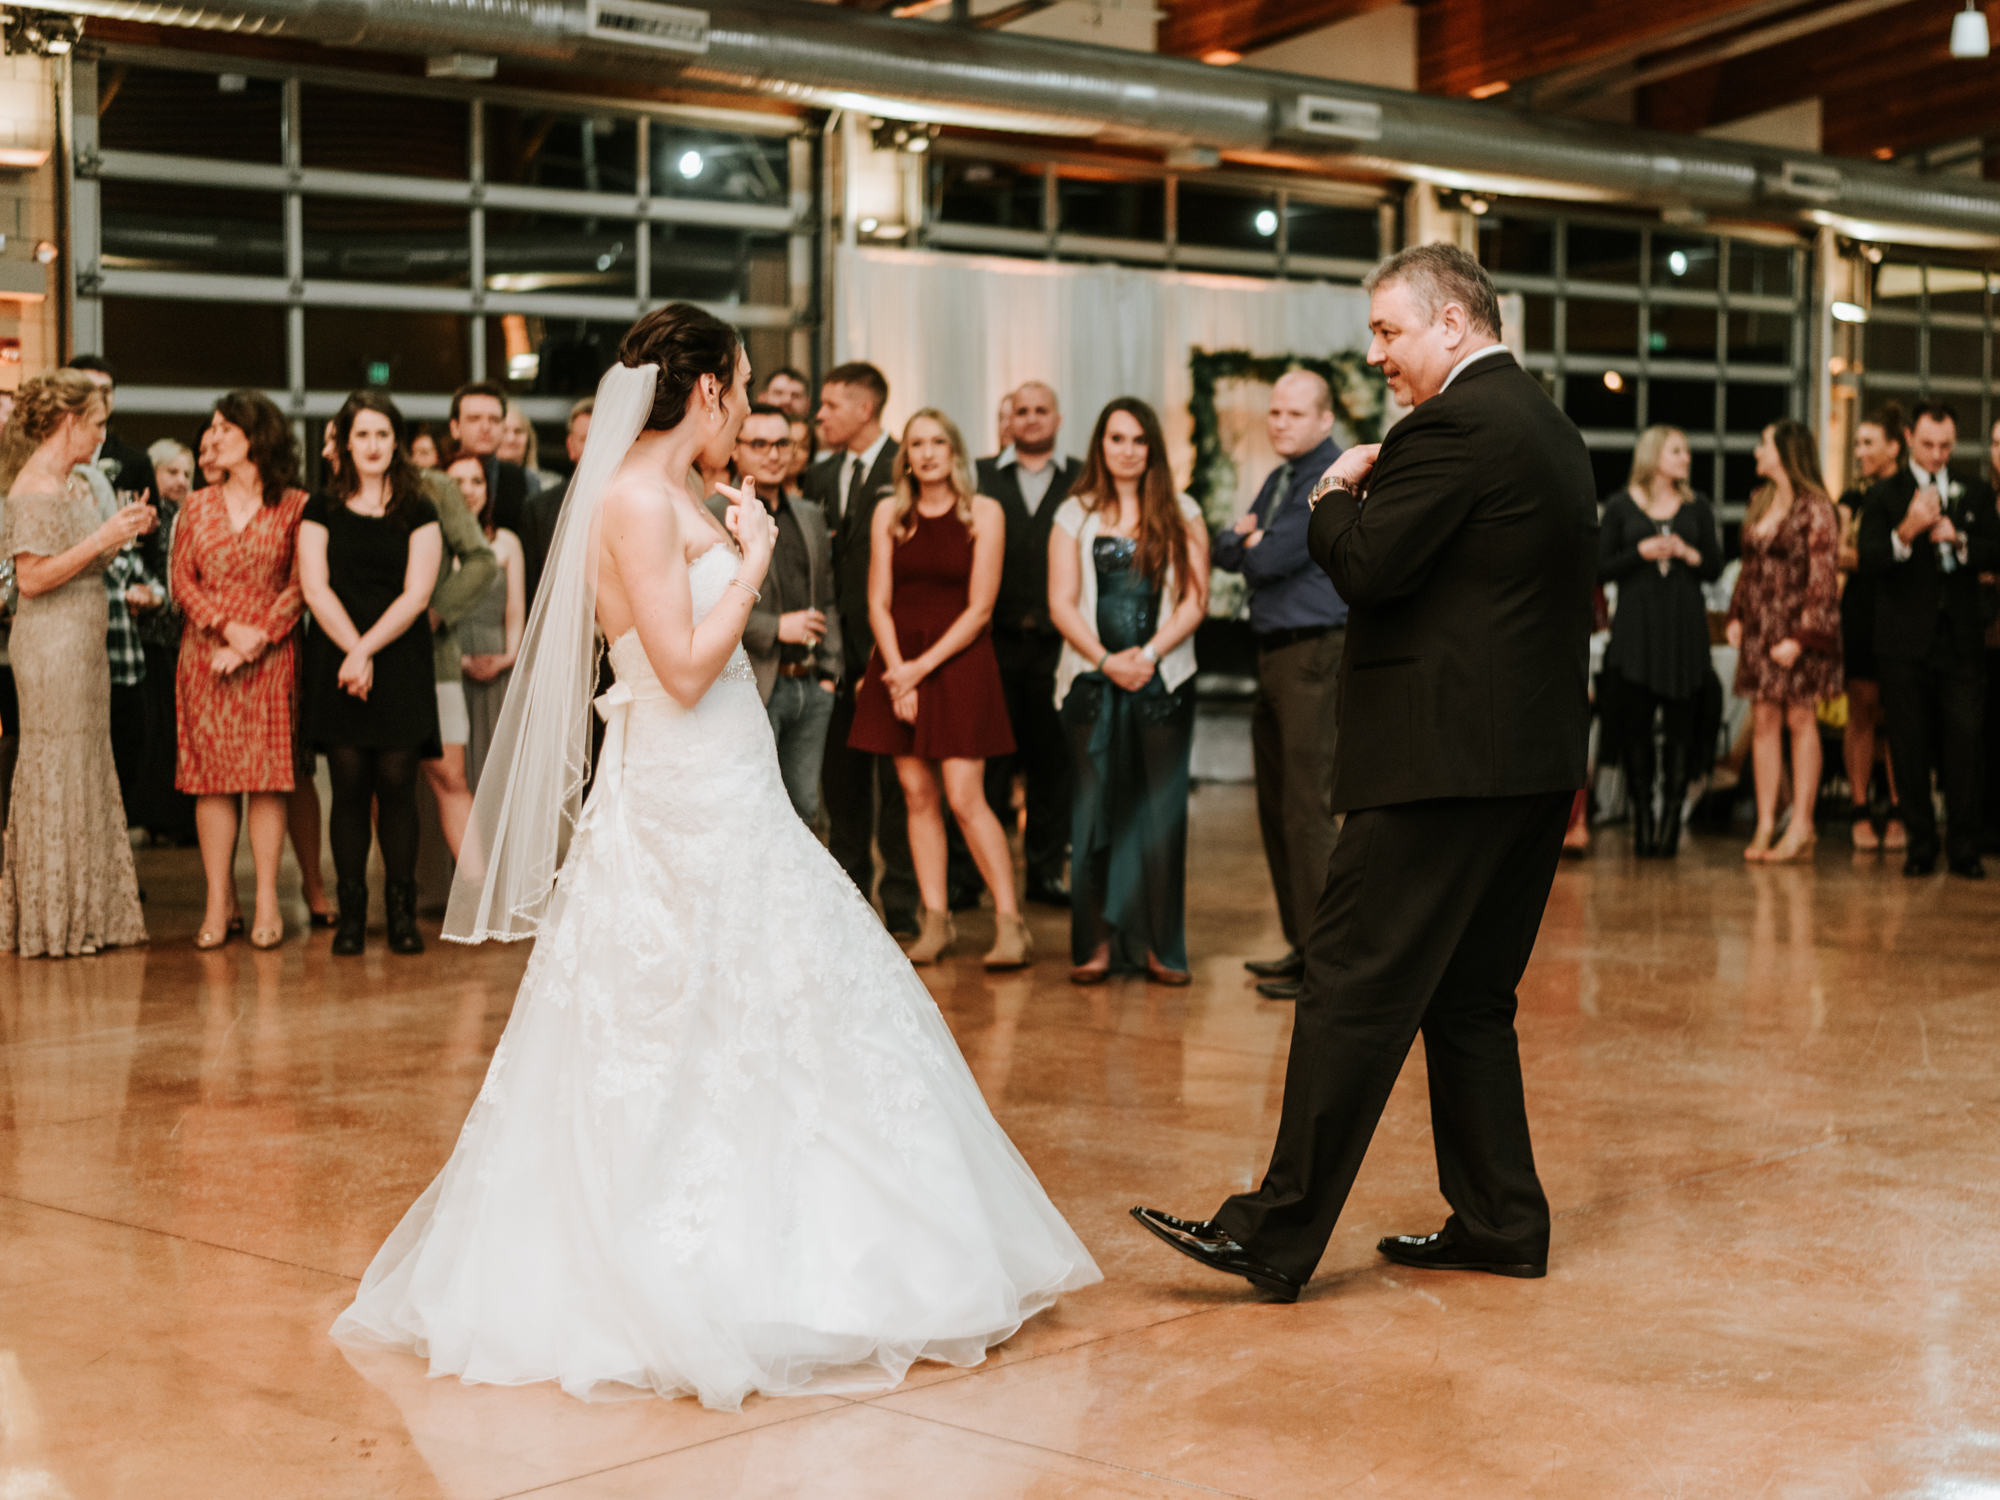 Stolen Glimpses Seattle Wedding Photographers 104.jpg